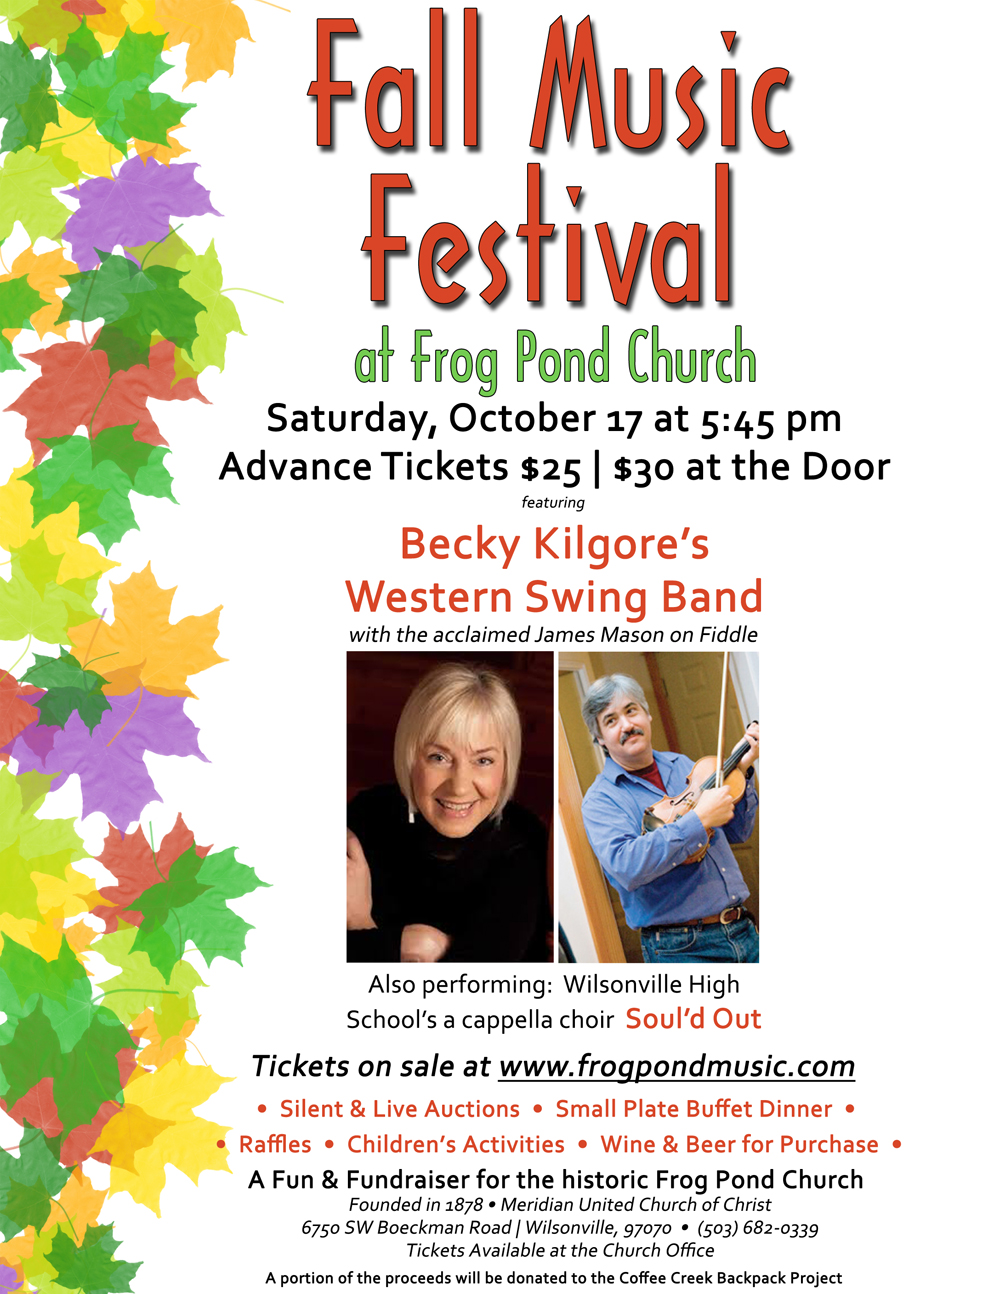 Fall Music Festival at Frog Pond Church